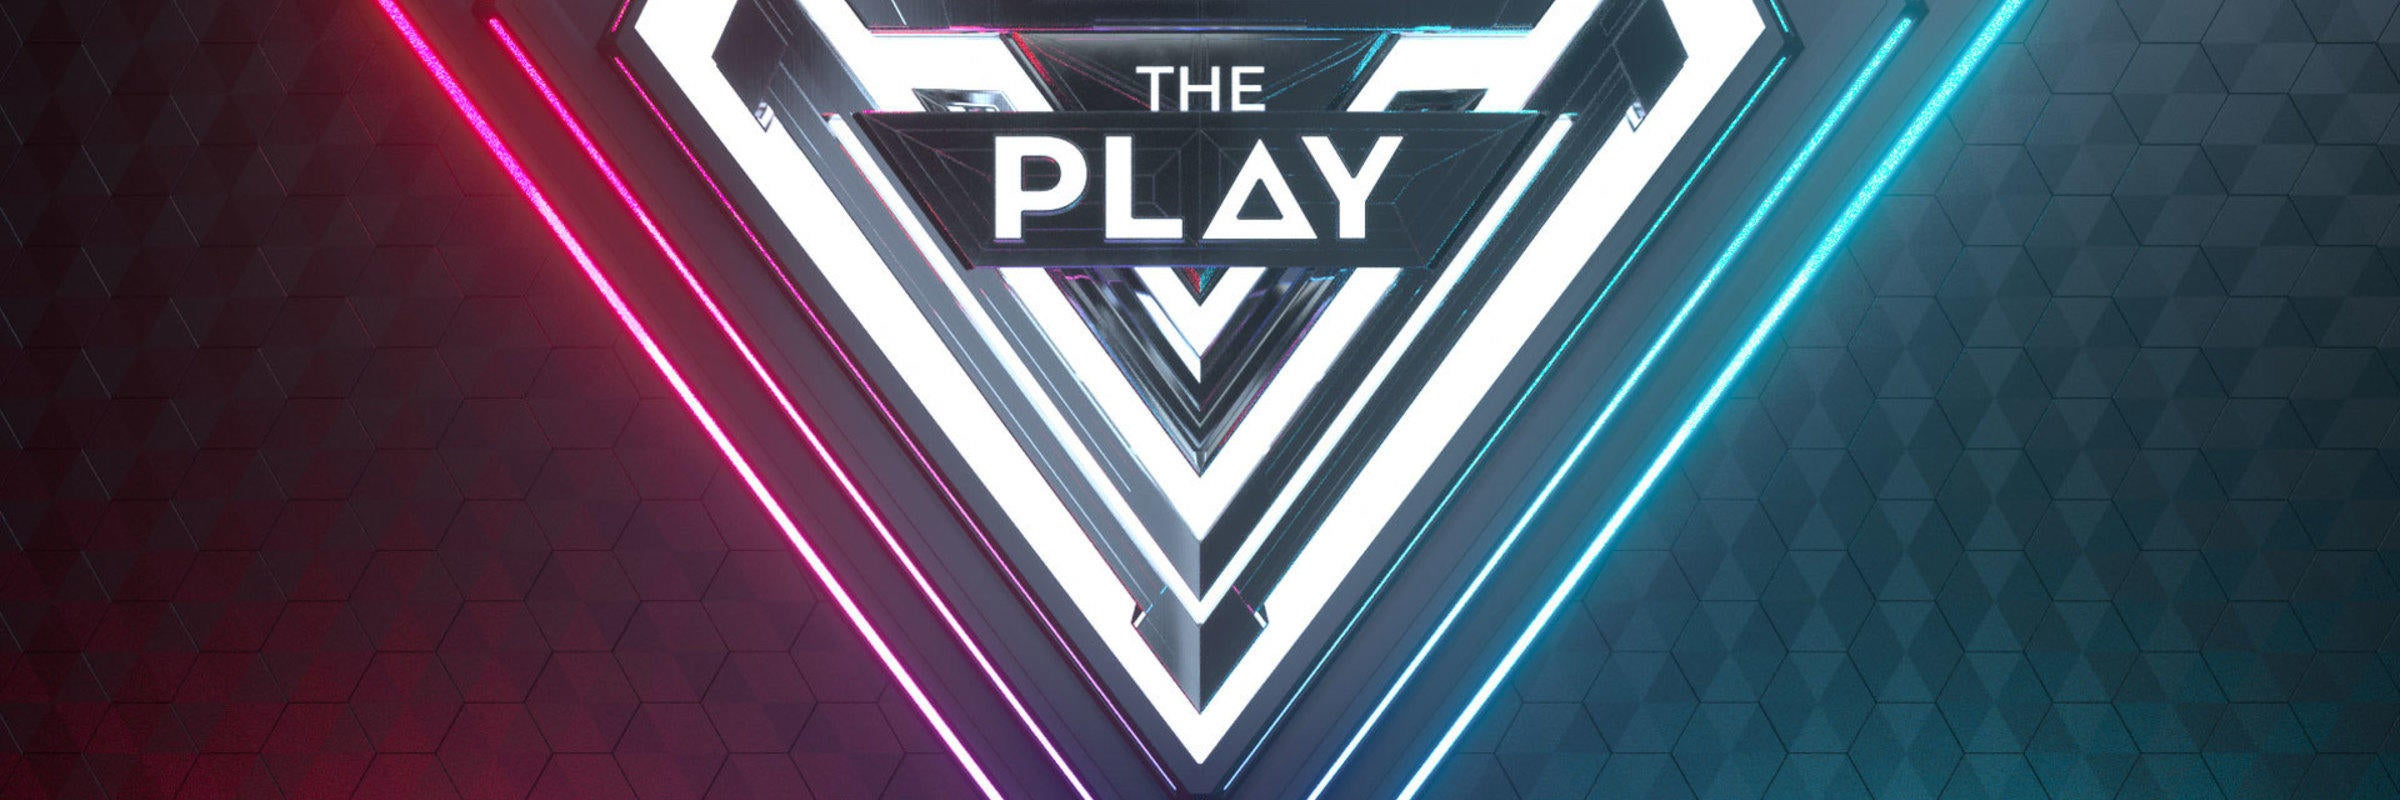 'THE PLAY' REGISTRATION OPEN NOW Image